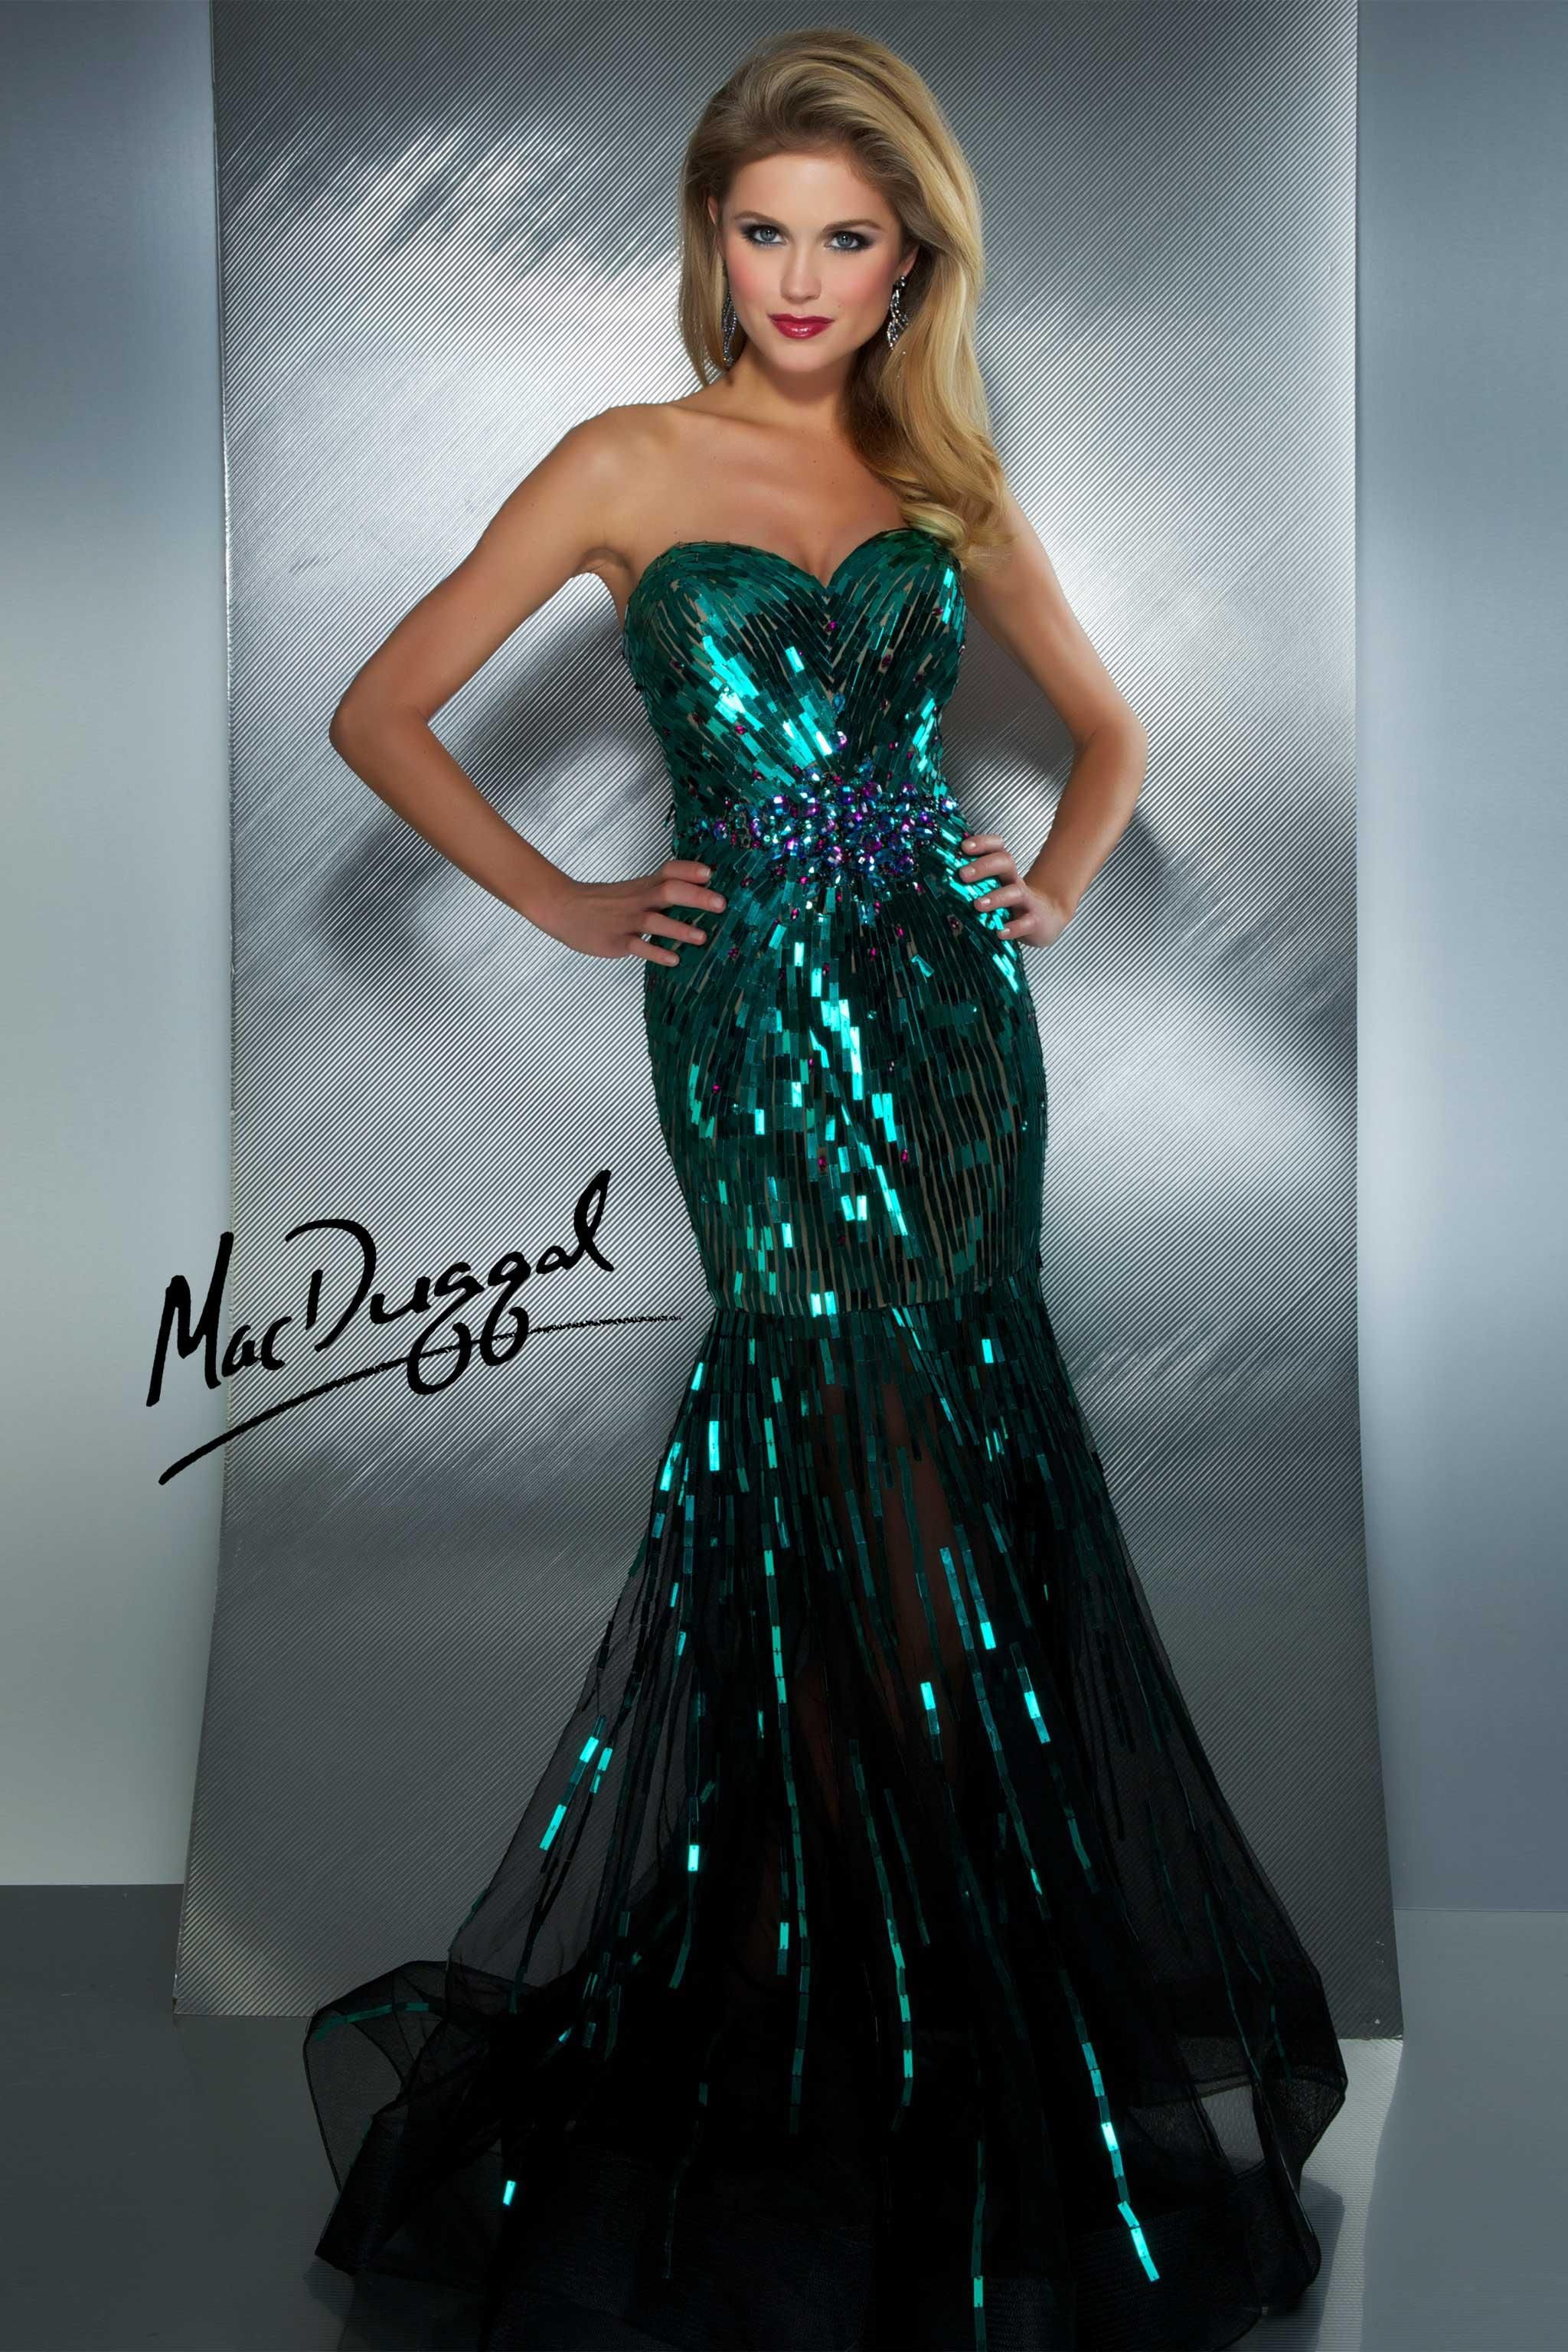 Teal Metallic Sequin Mermaid Prom Dress maybe a diff color ...